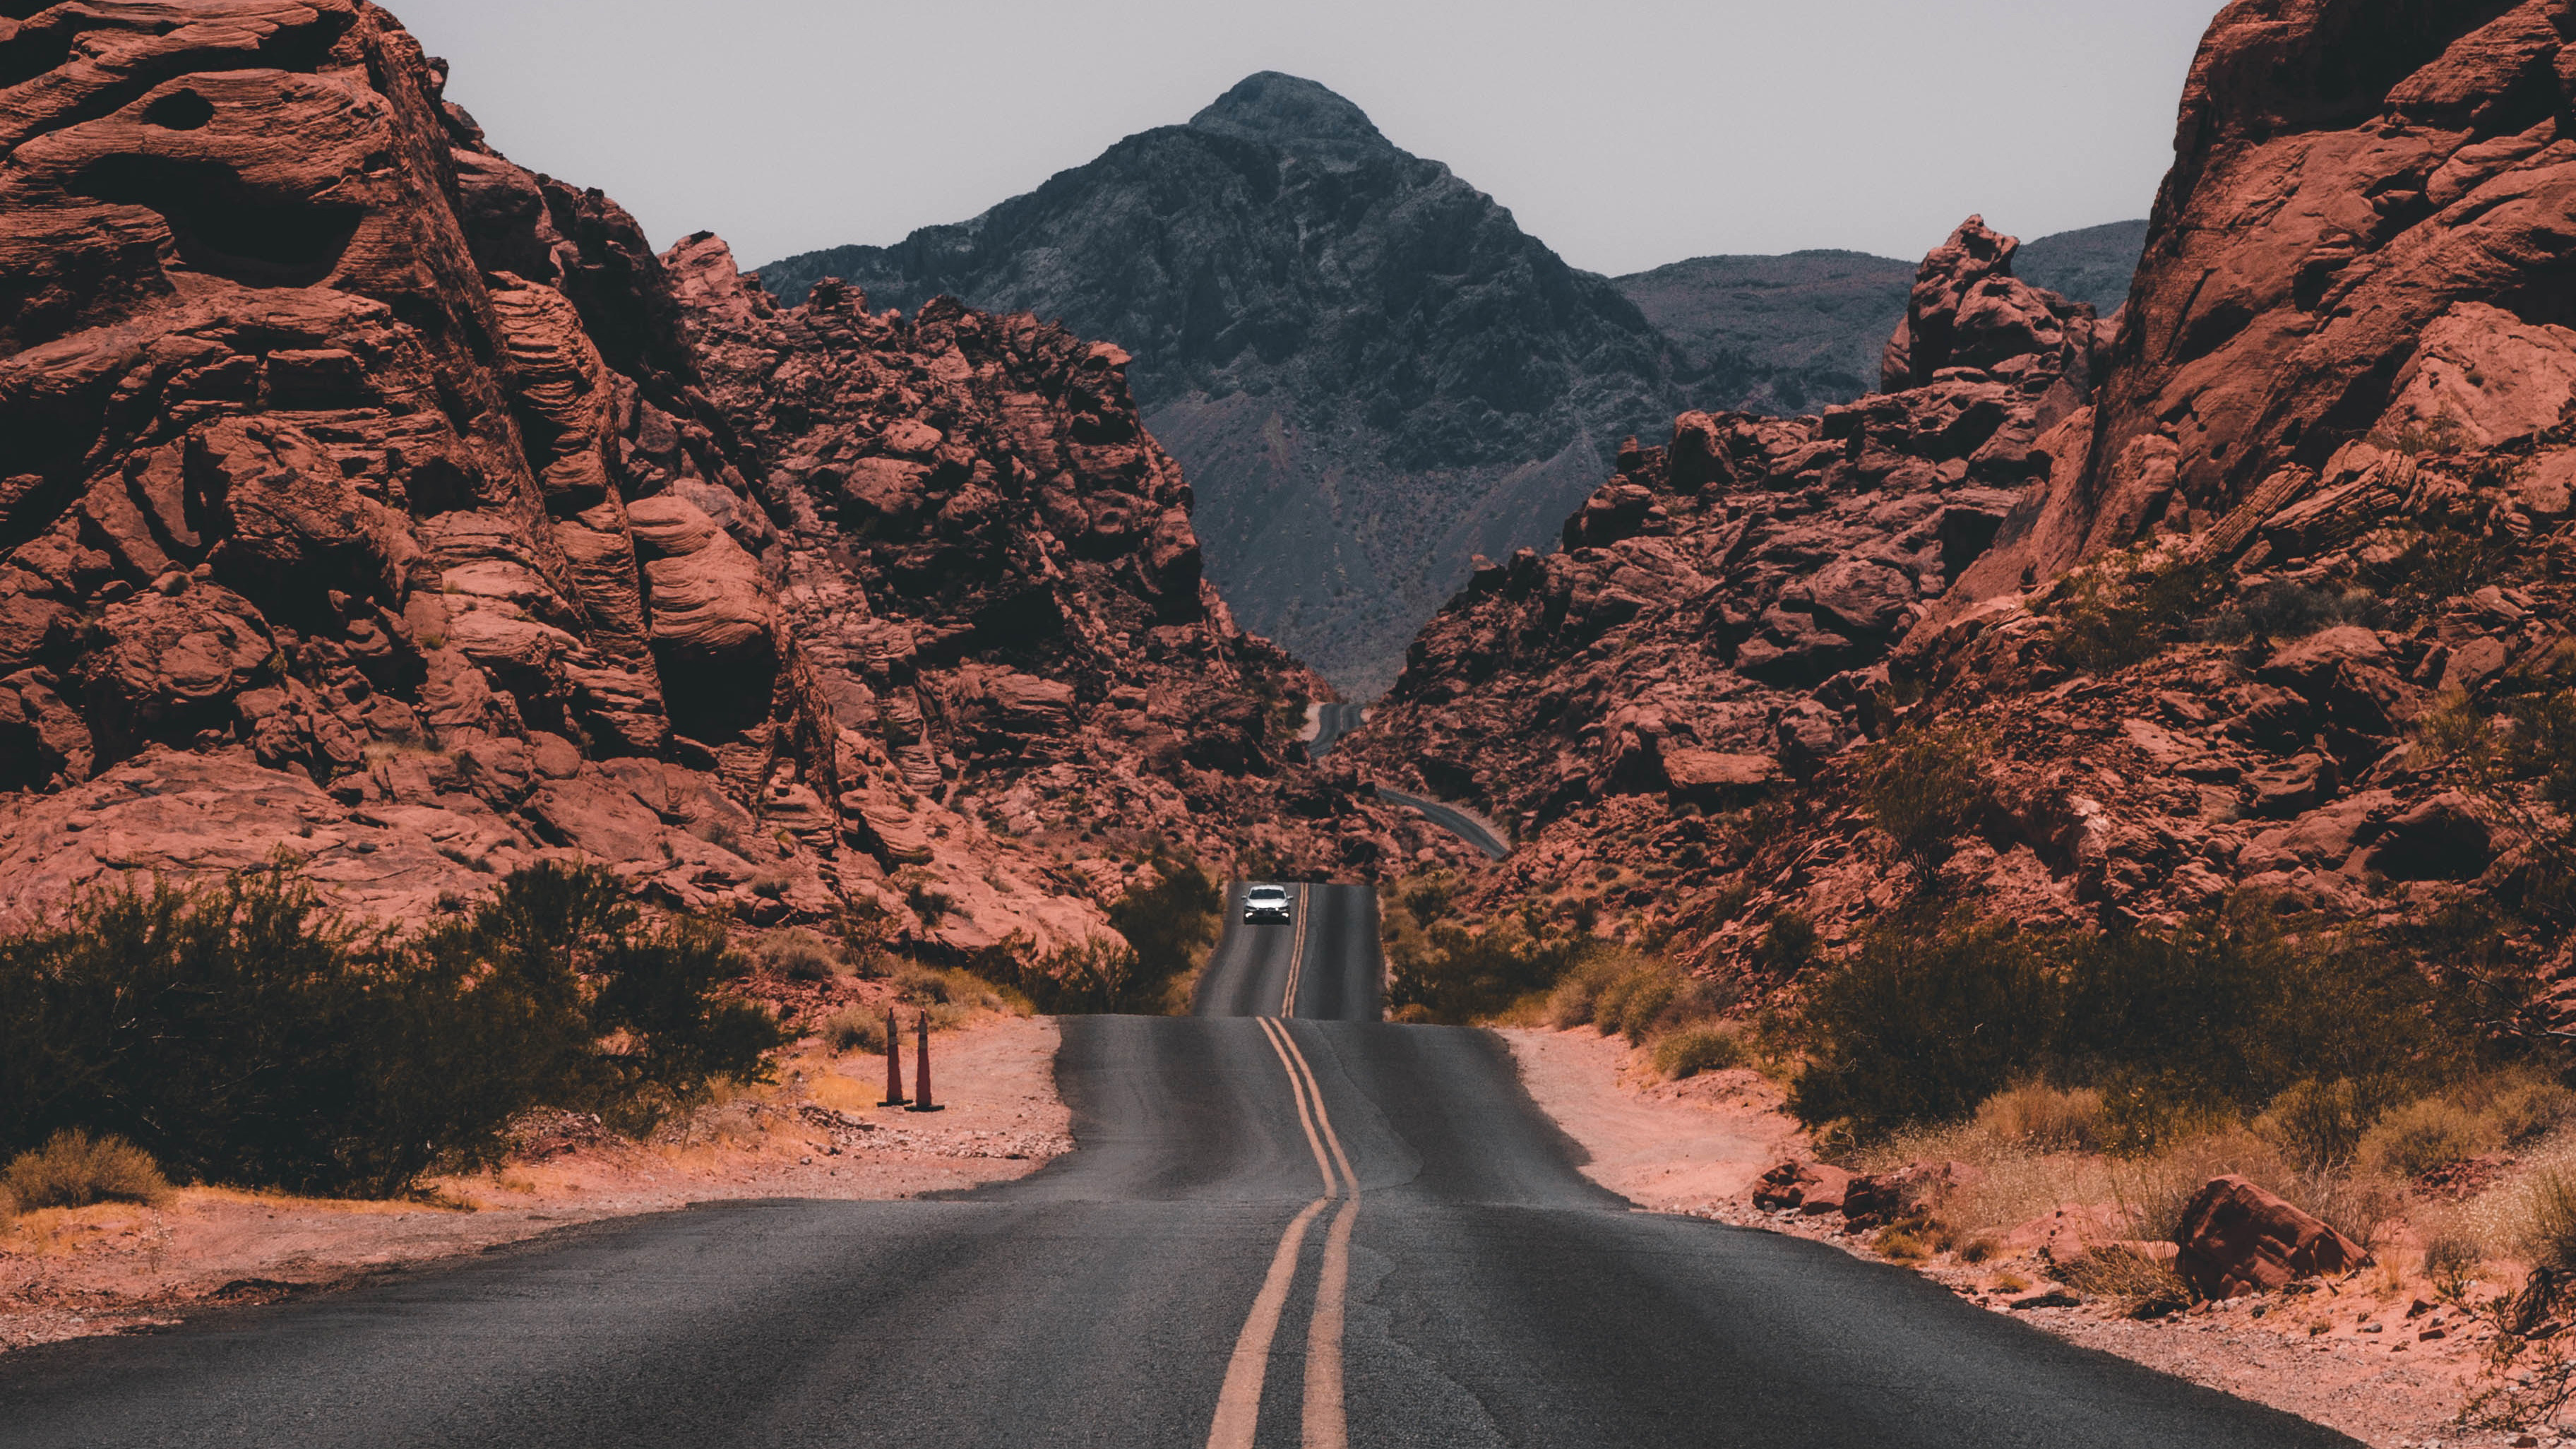 Cliff valley road rocks 4k hd nature 4k wallpapers images backgrounds photos and pictures - Background images 4k hd ...